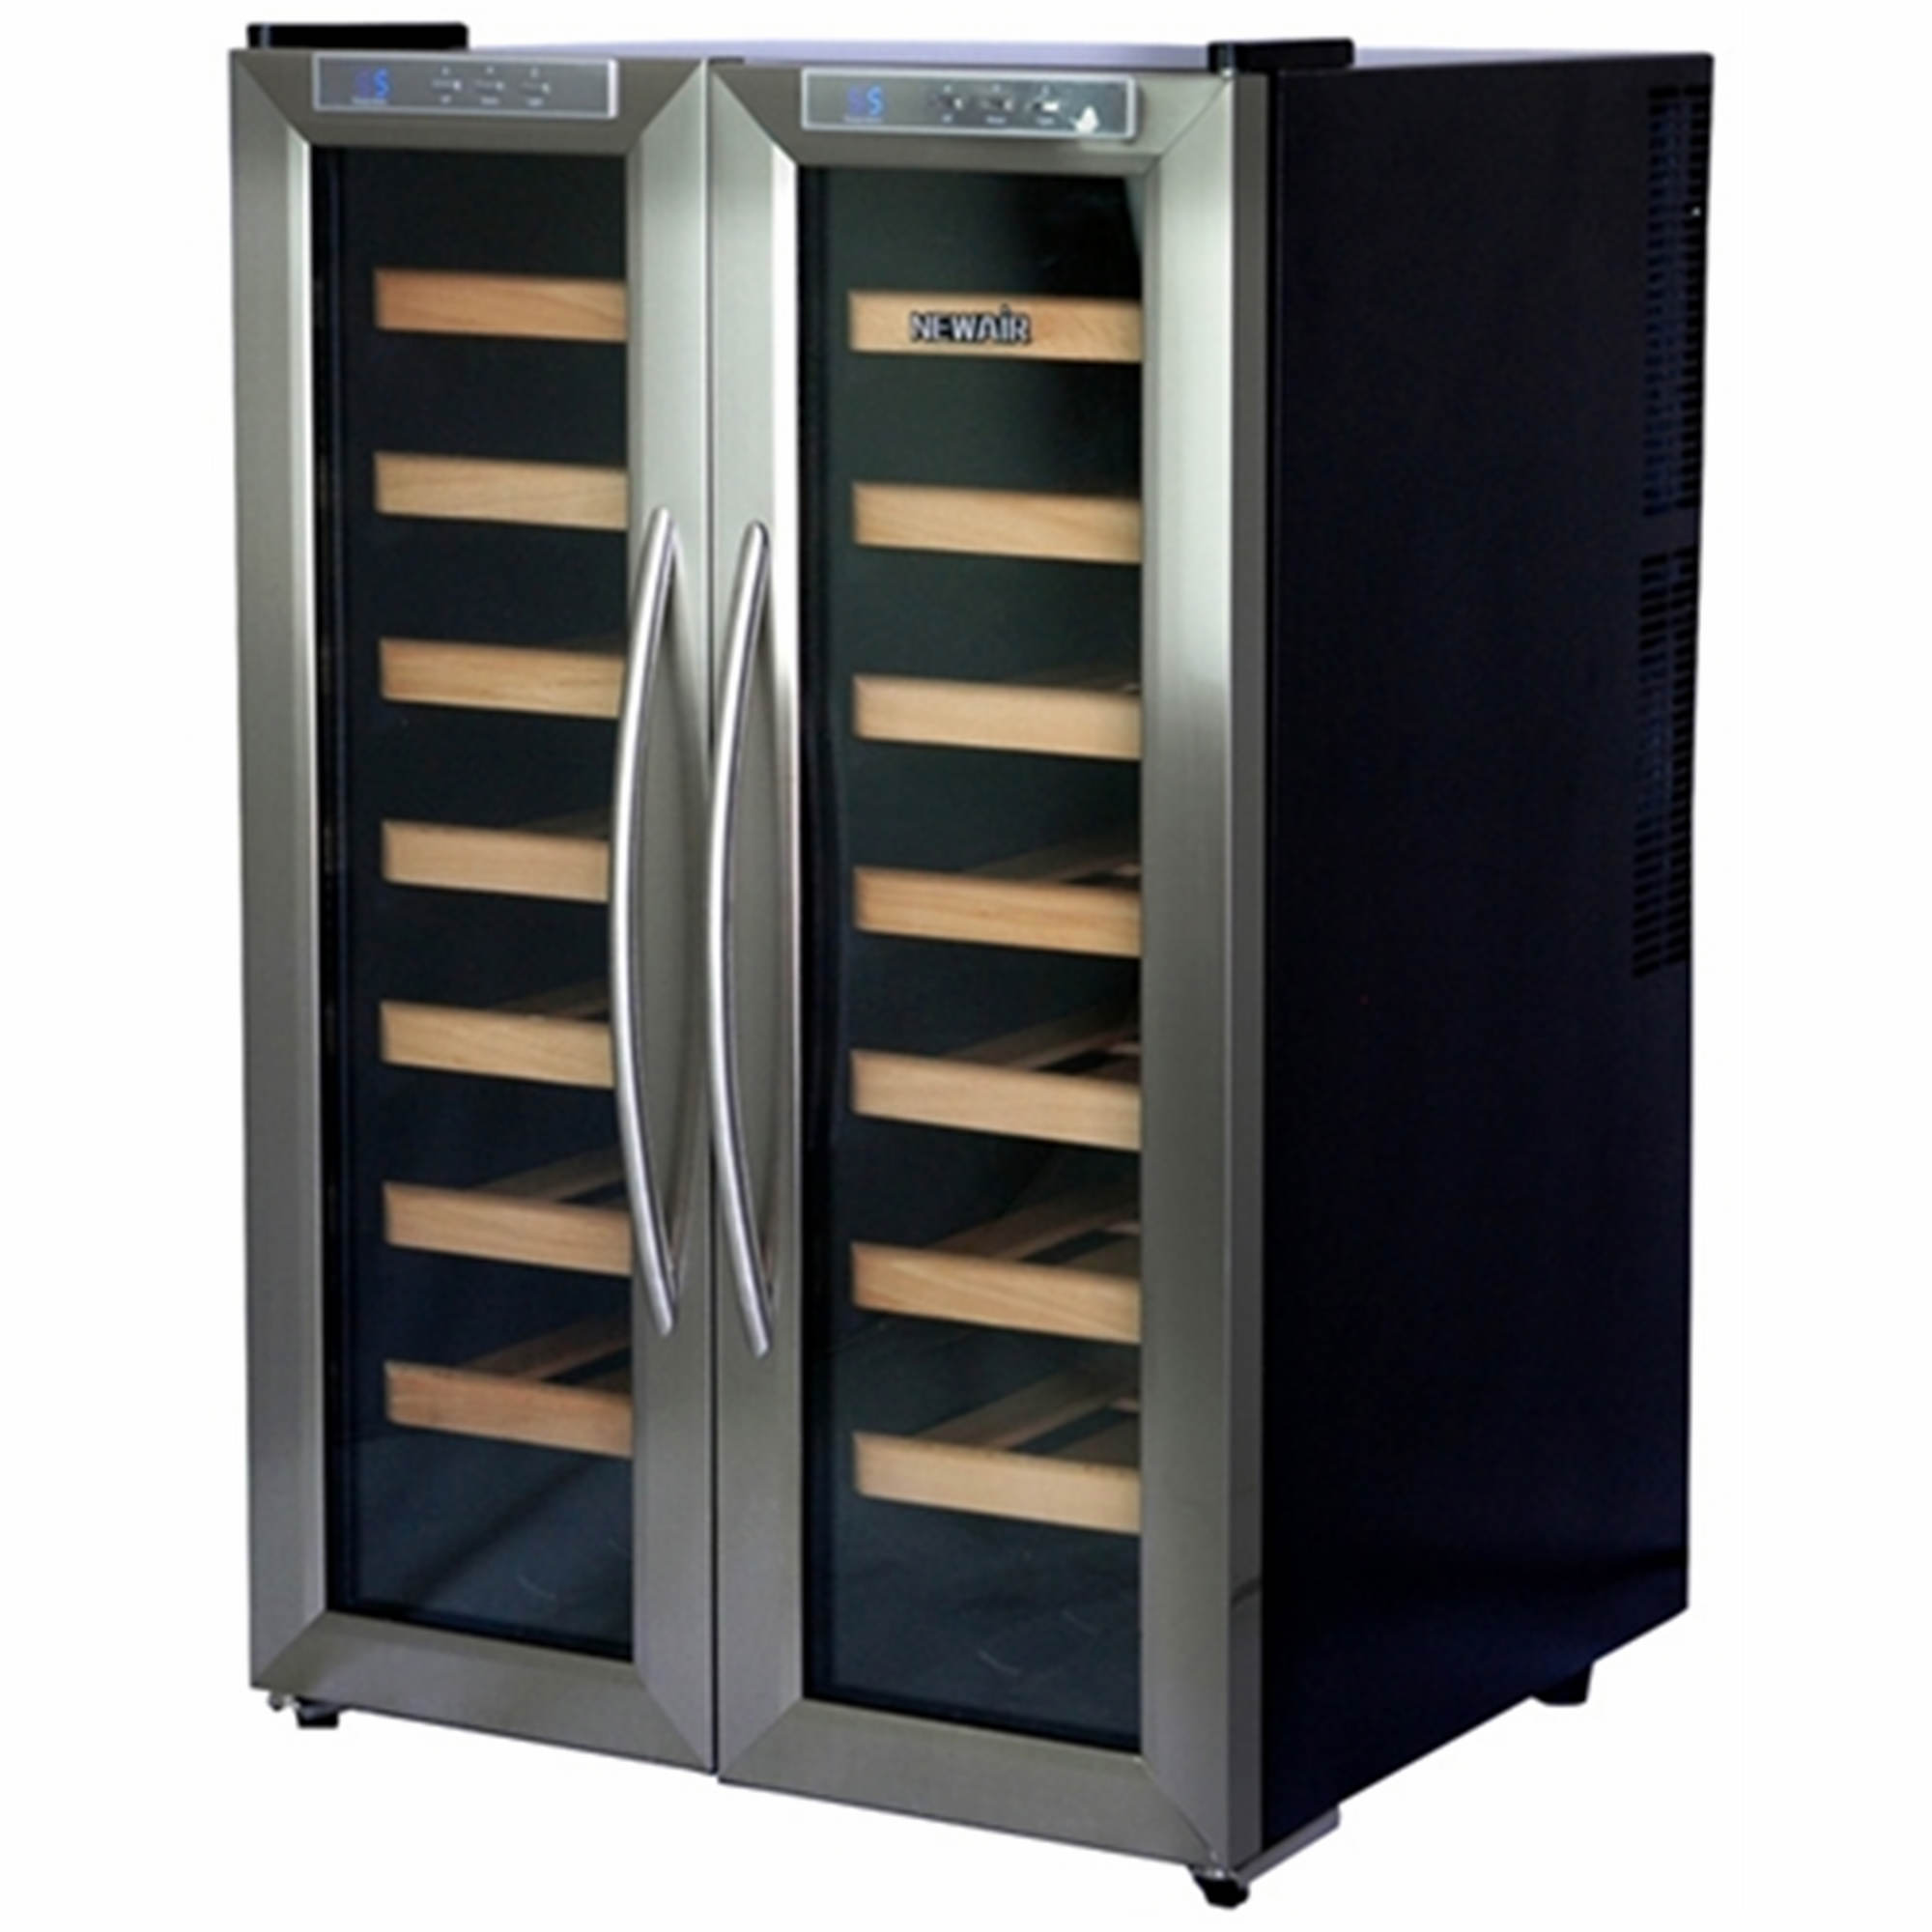 door mini garden steel series doors integrated product stainless home glass wine inch shipping silhouette today overstock danby professional free fridge cooler